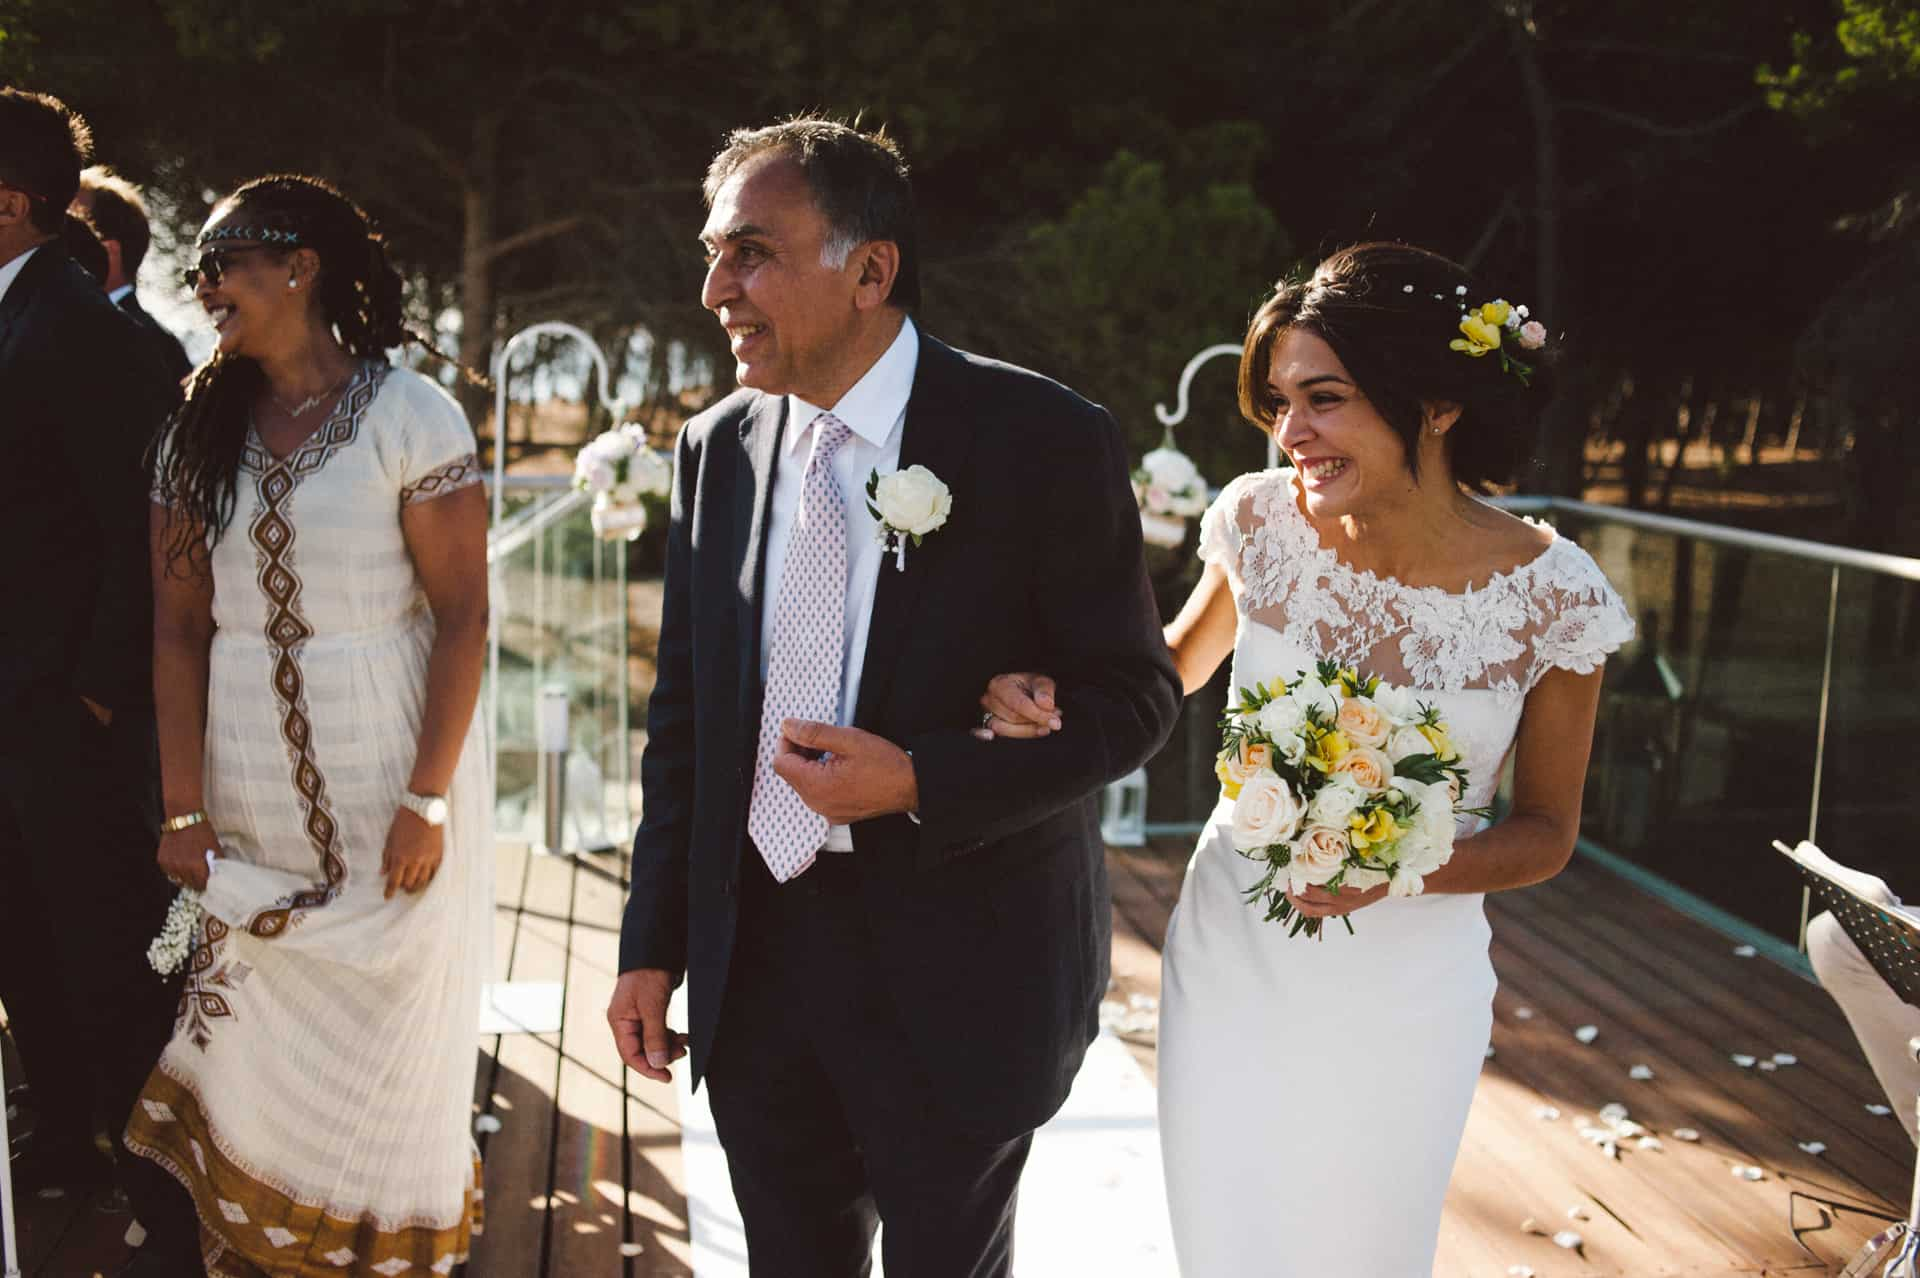 Best wedding images of the year (195 of 316)